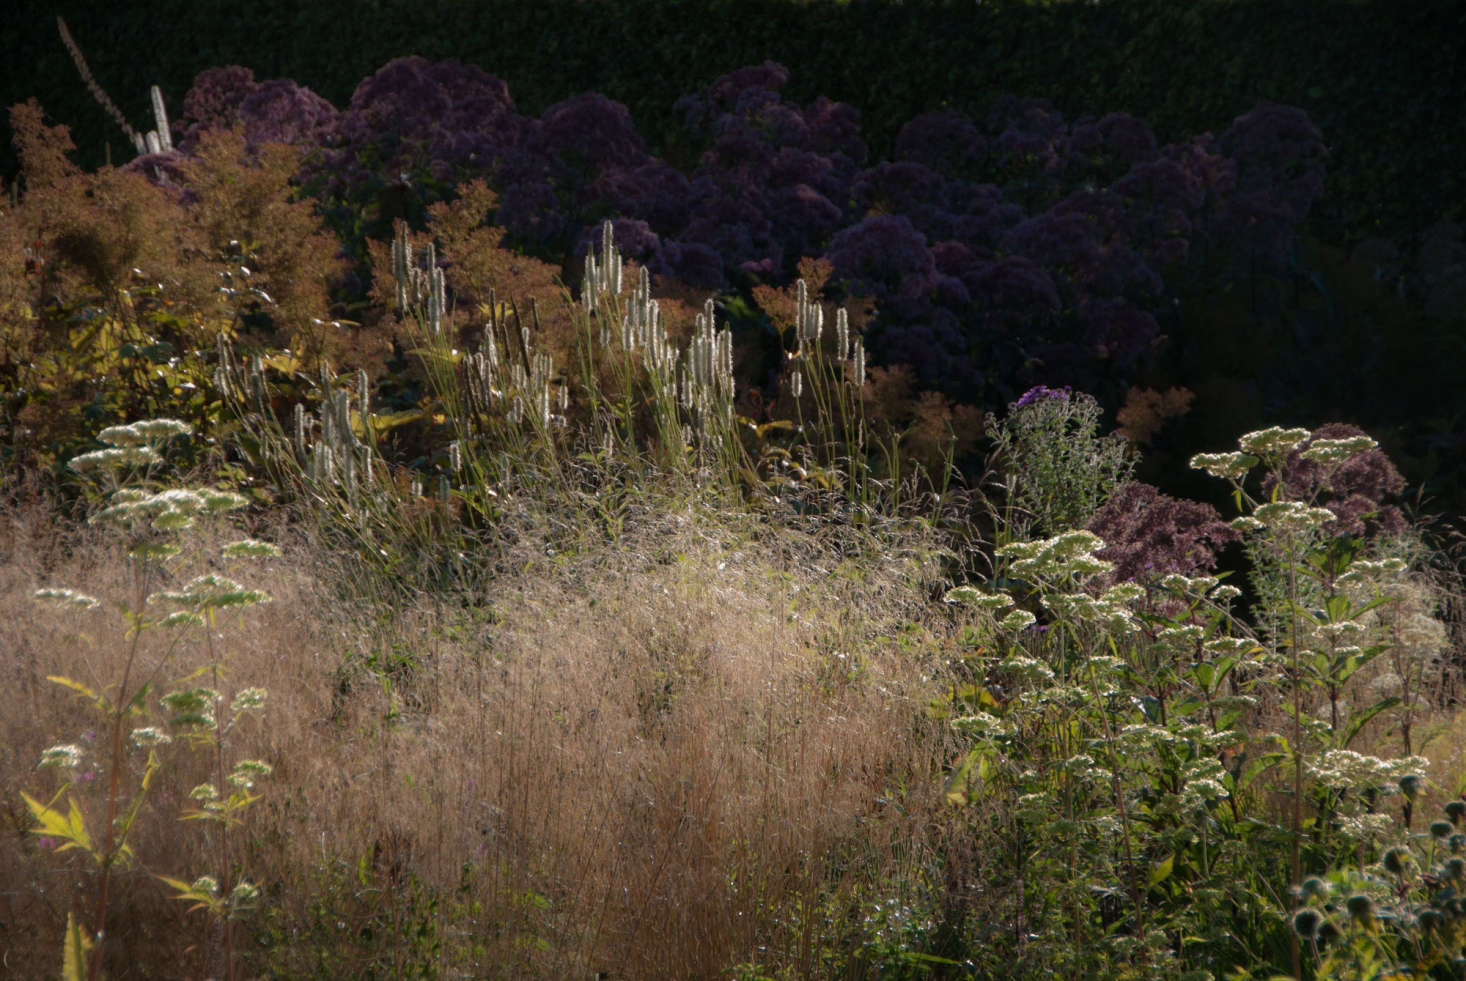 Actaea racemosa (Black Cohosh) addsheight and airiness behind grasses.